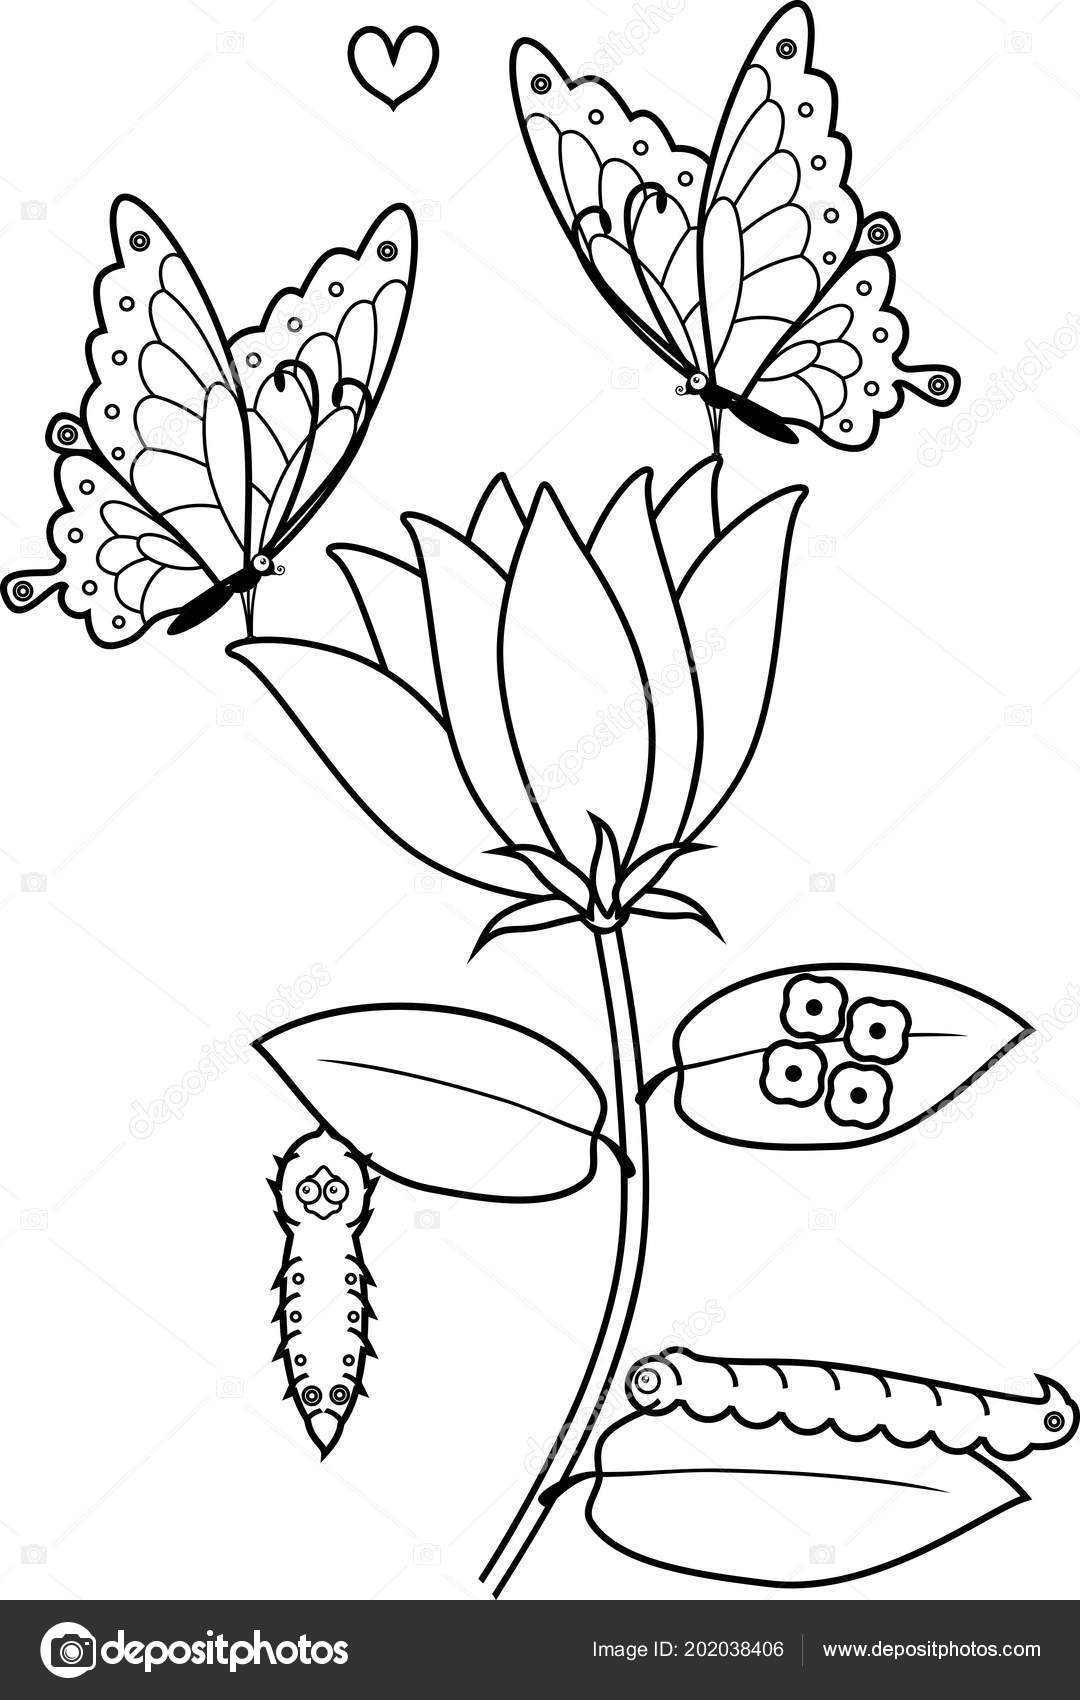 Coloring Page Life Cycle Butterfly Flower Vector Image By C Mariaflaya Vector Stock 202038406